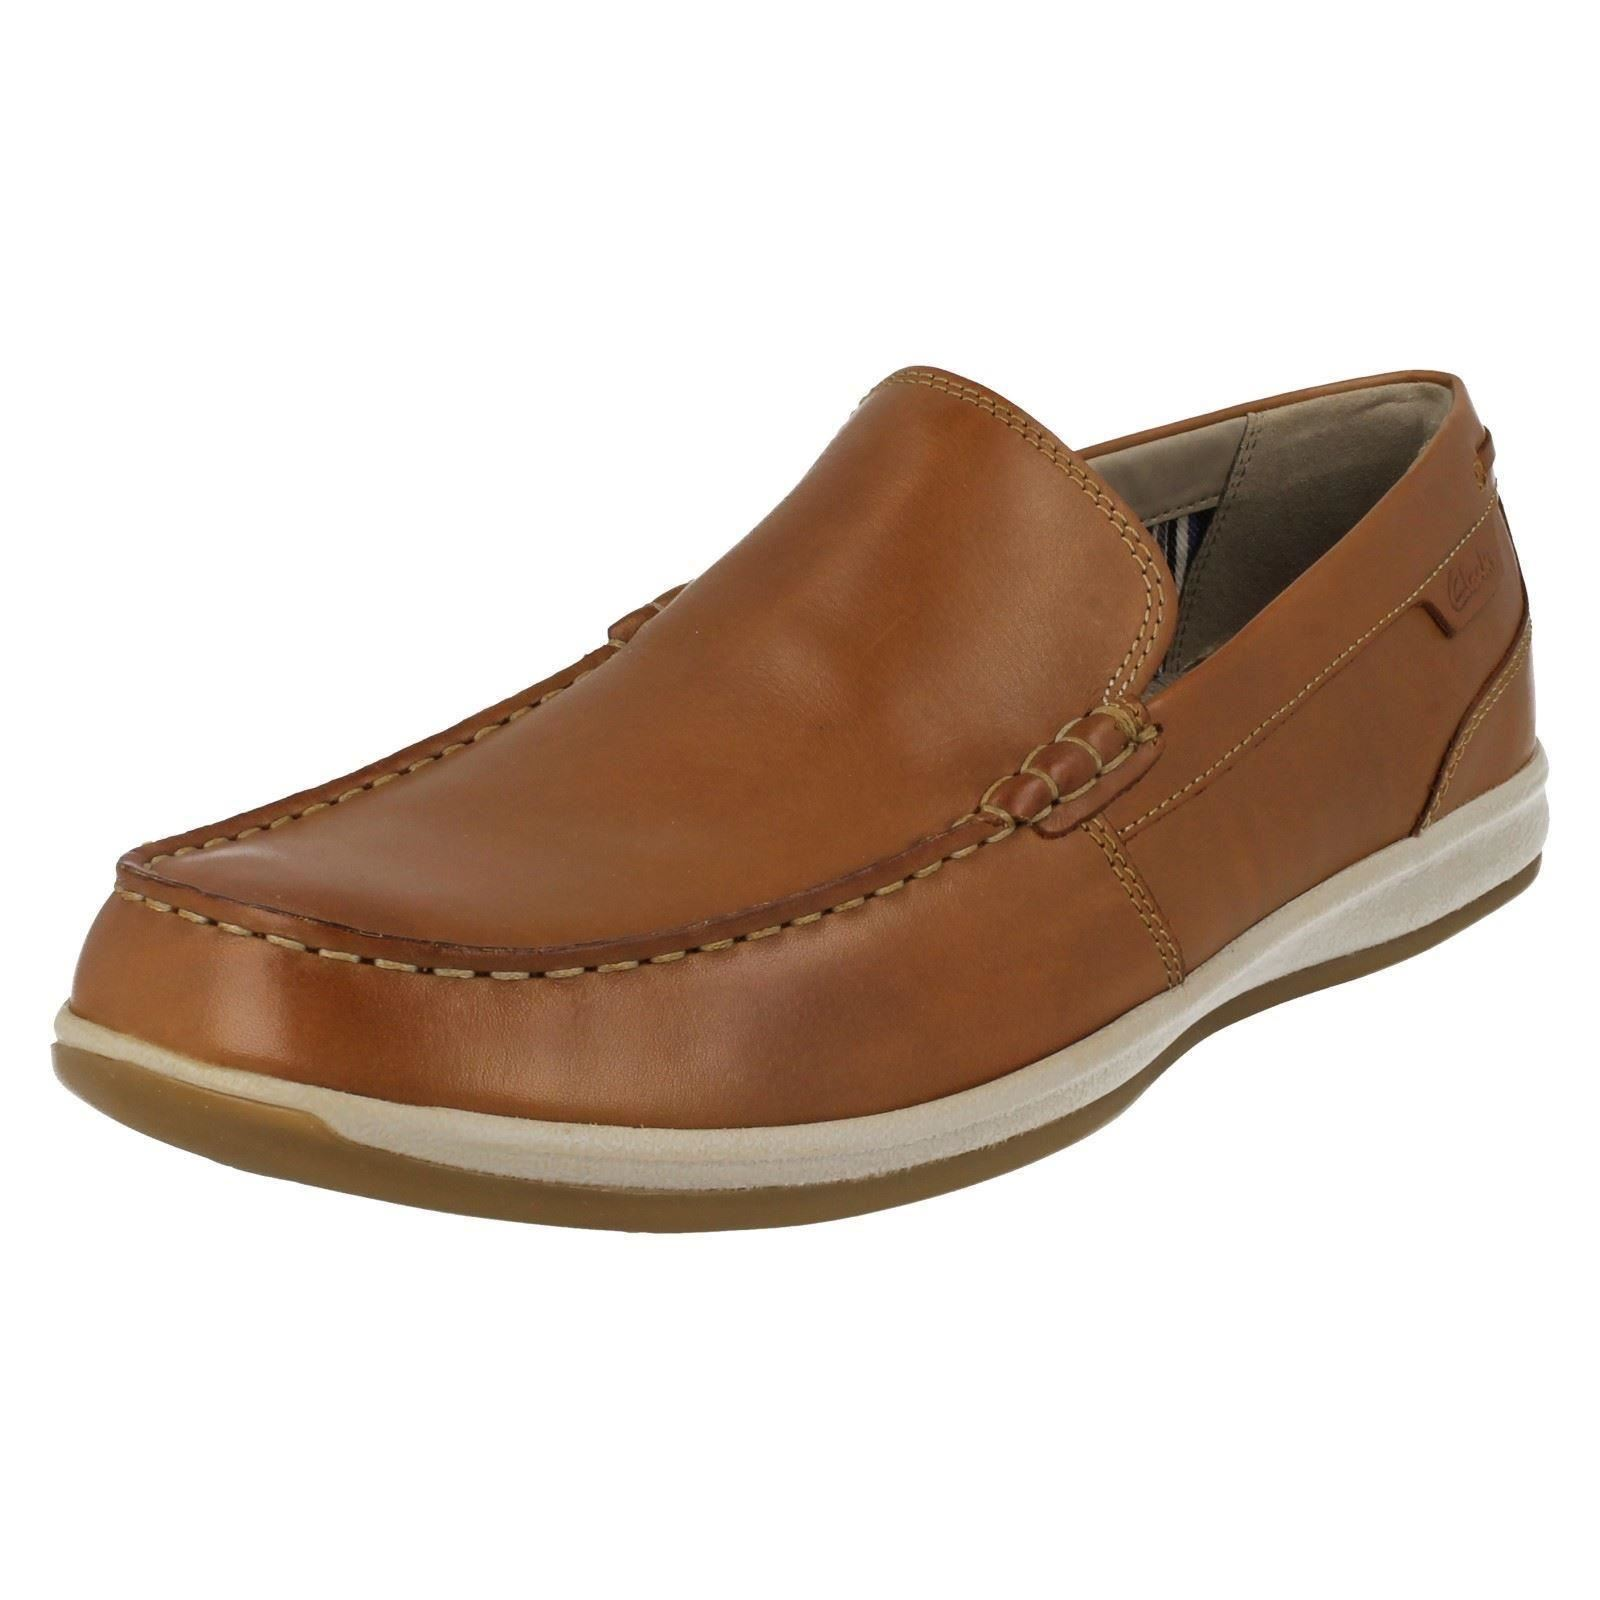 mens clarks moccasin style shoes fallston step ebay